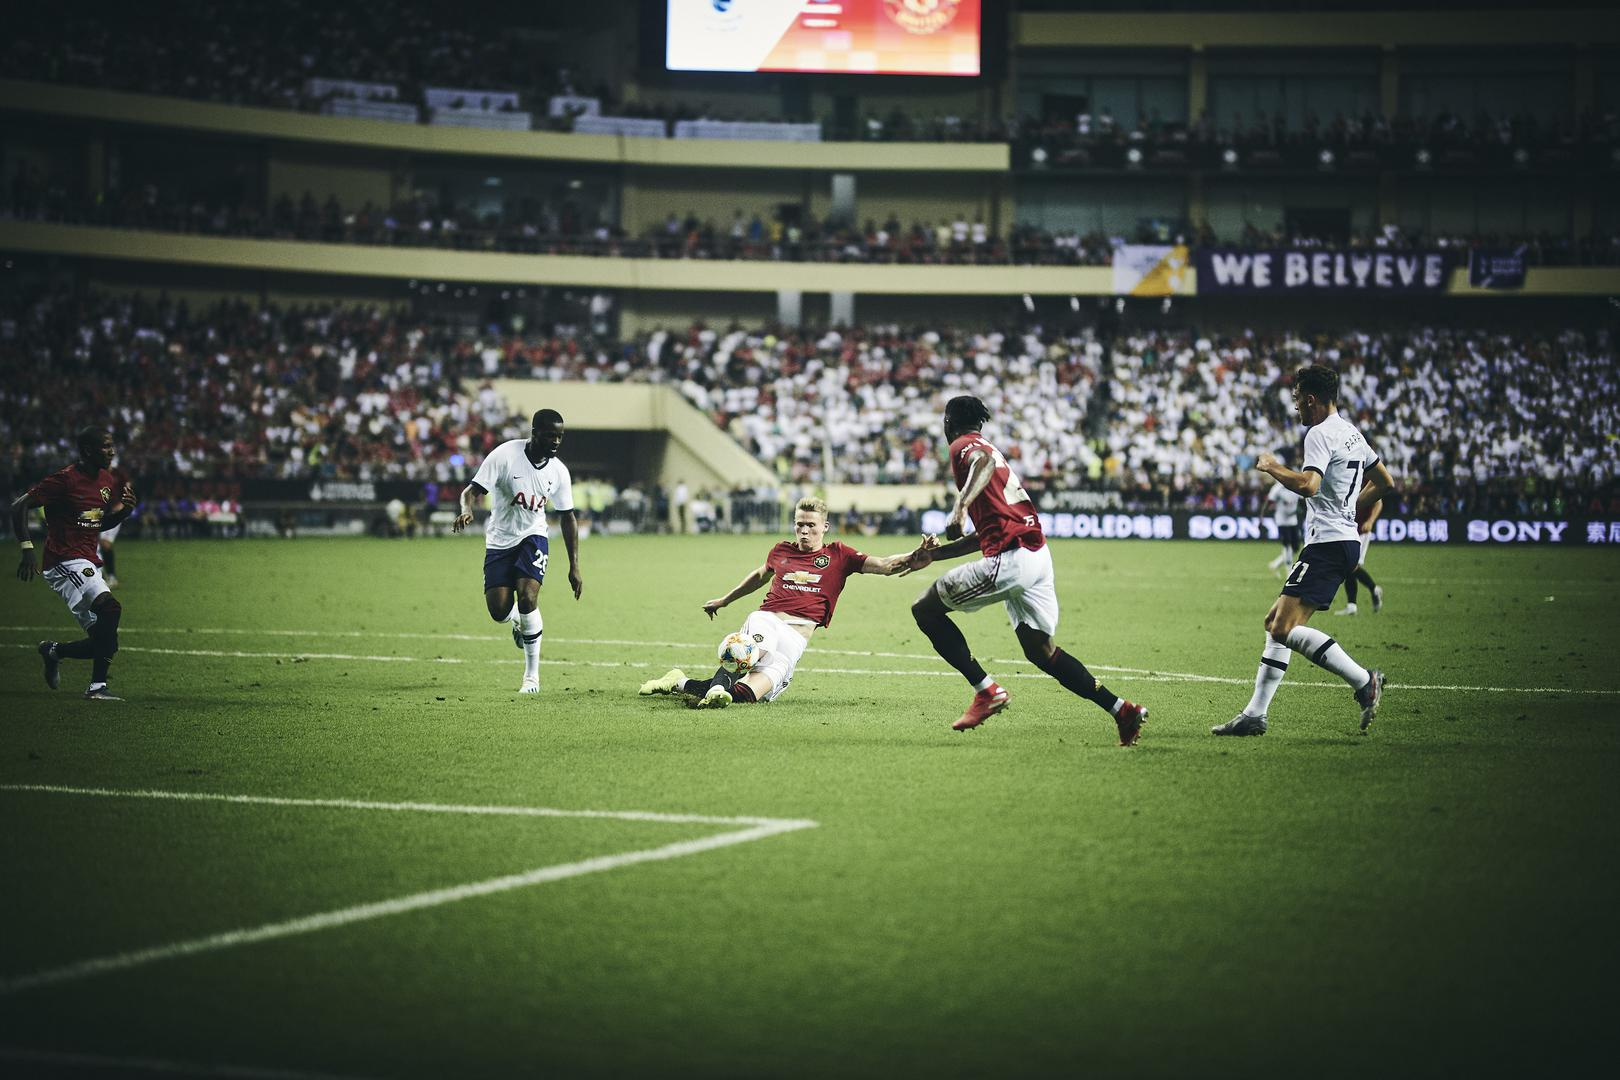 Scott McTominay wins the ball during Manchester United's 2-1 International Champions Cup win against Tottenham Hotspur in Shanghai on 25 July 2019.